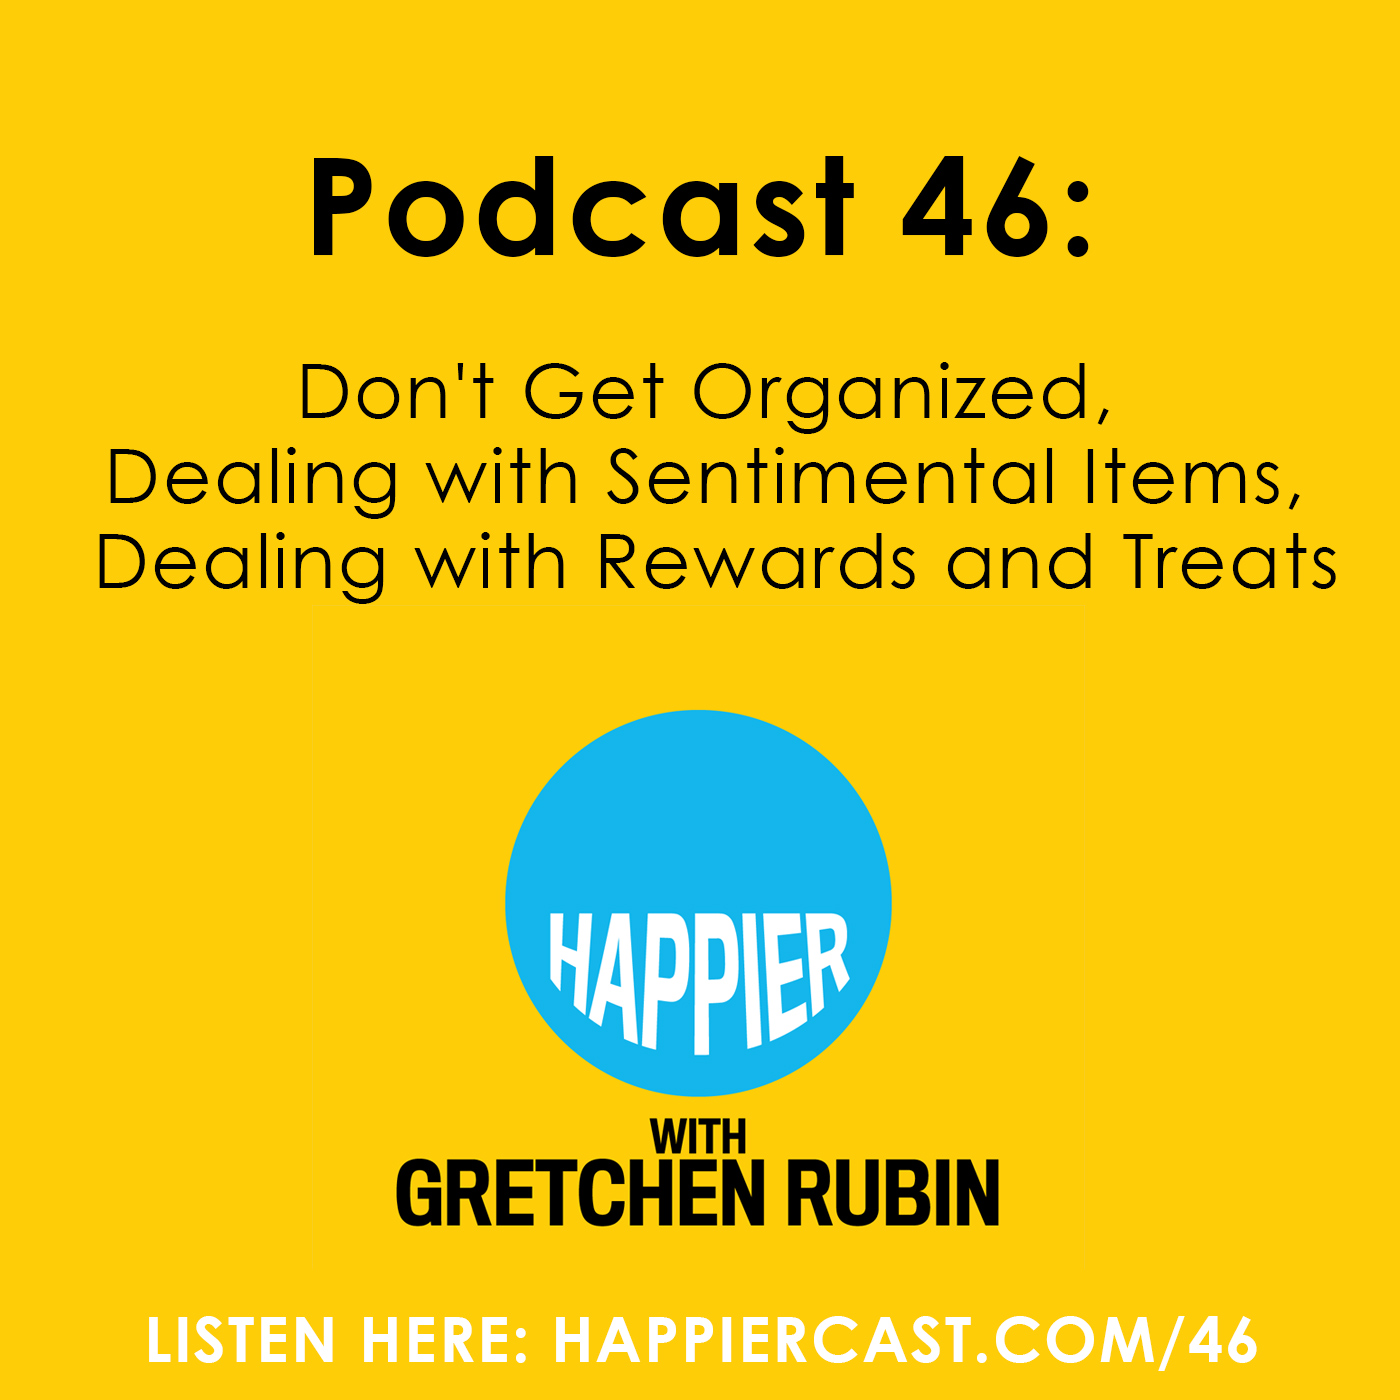 Happier Podcast #46